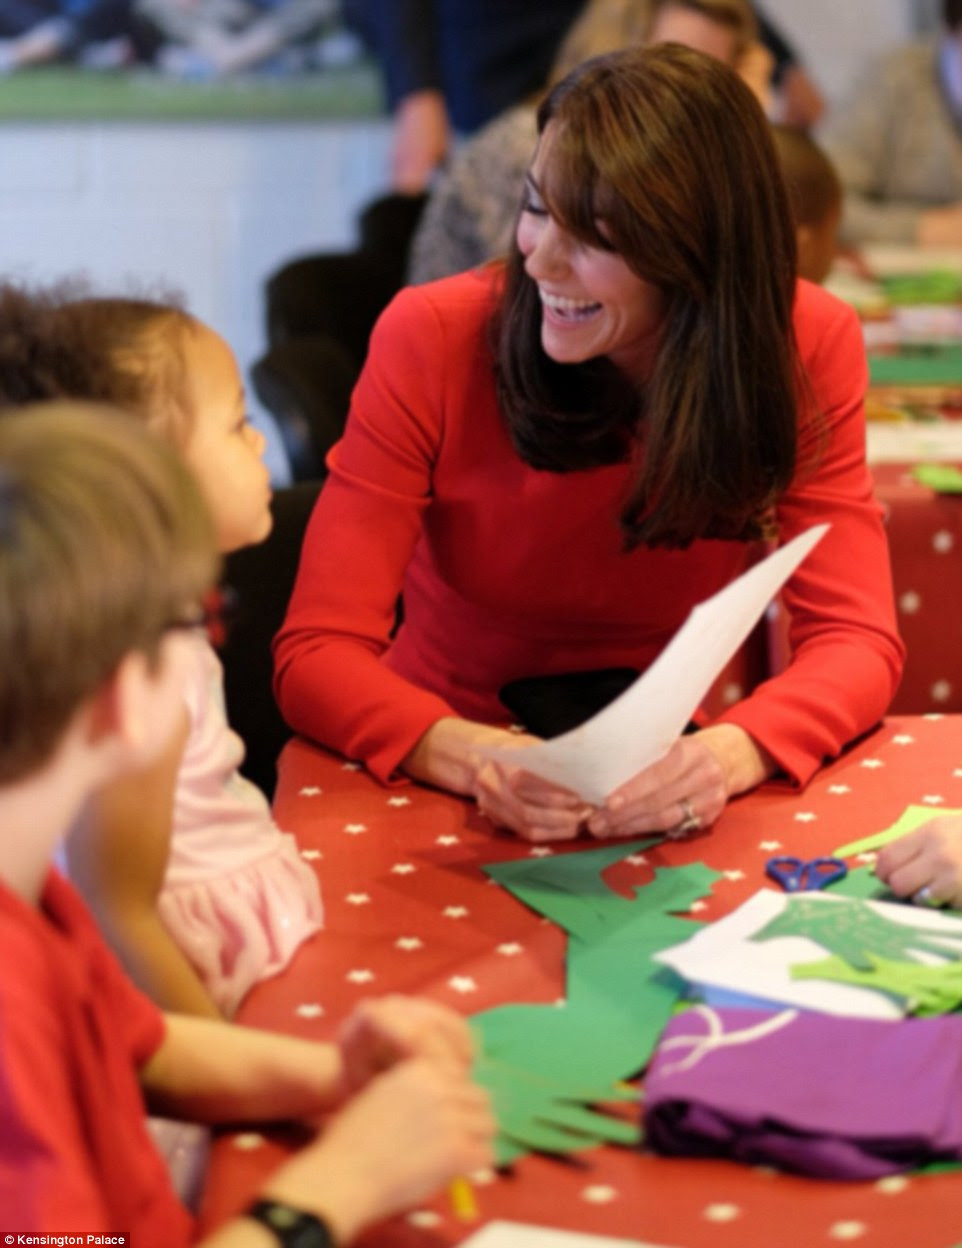 The Duchess of Cambridge appeared in high spirits as she laughed along with the children while making a Christmas tree collage